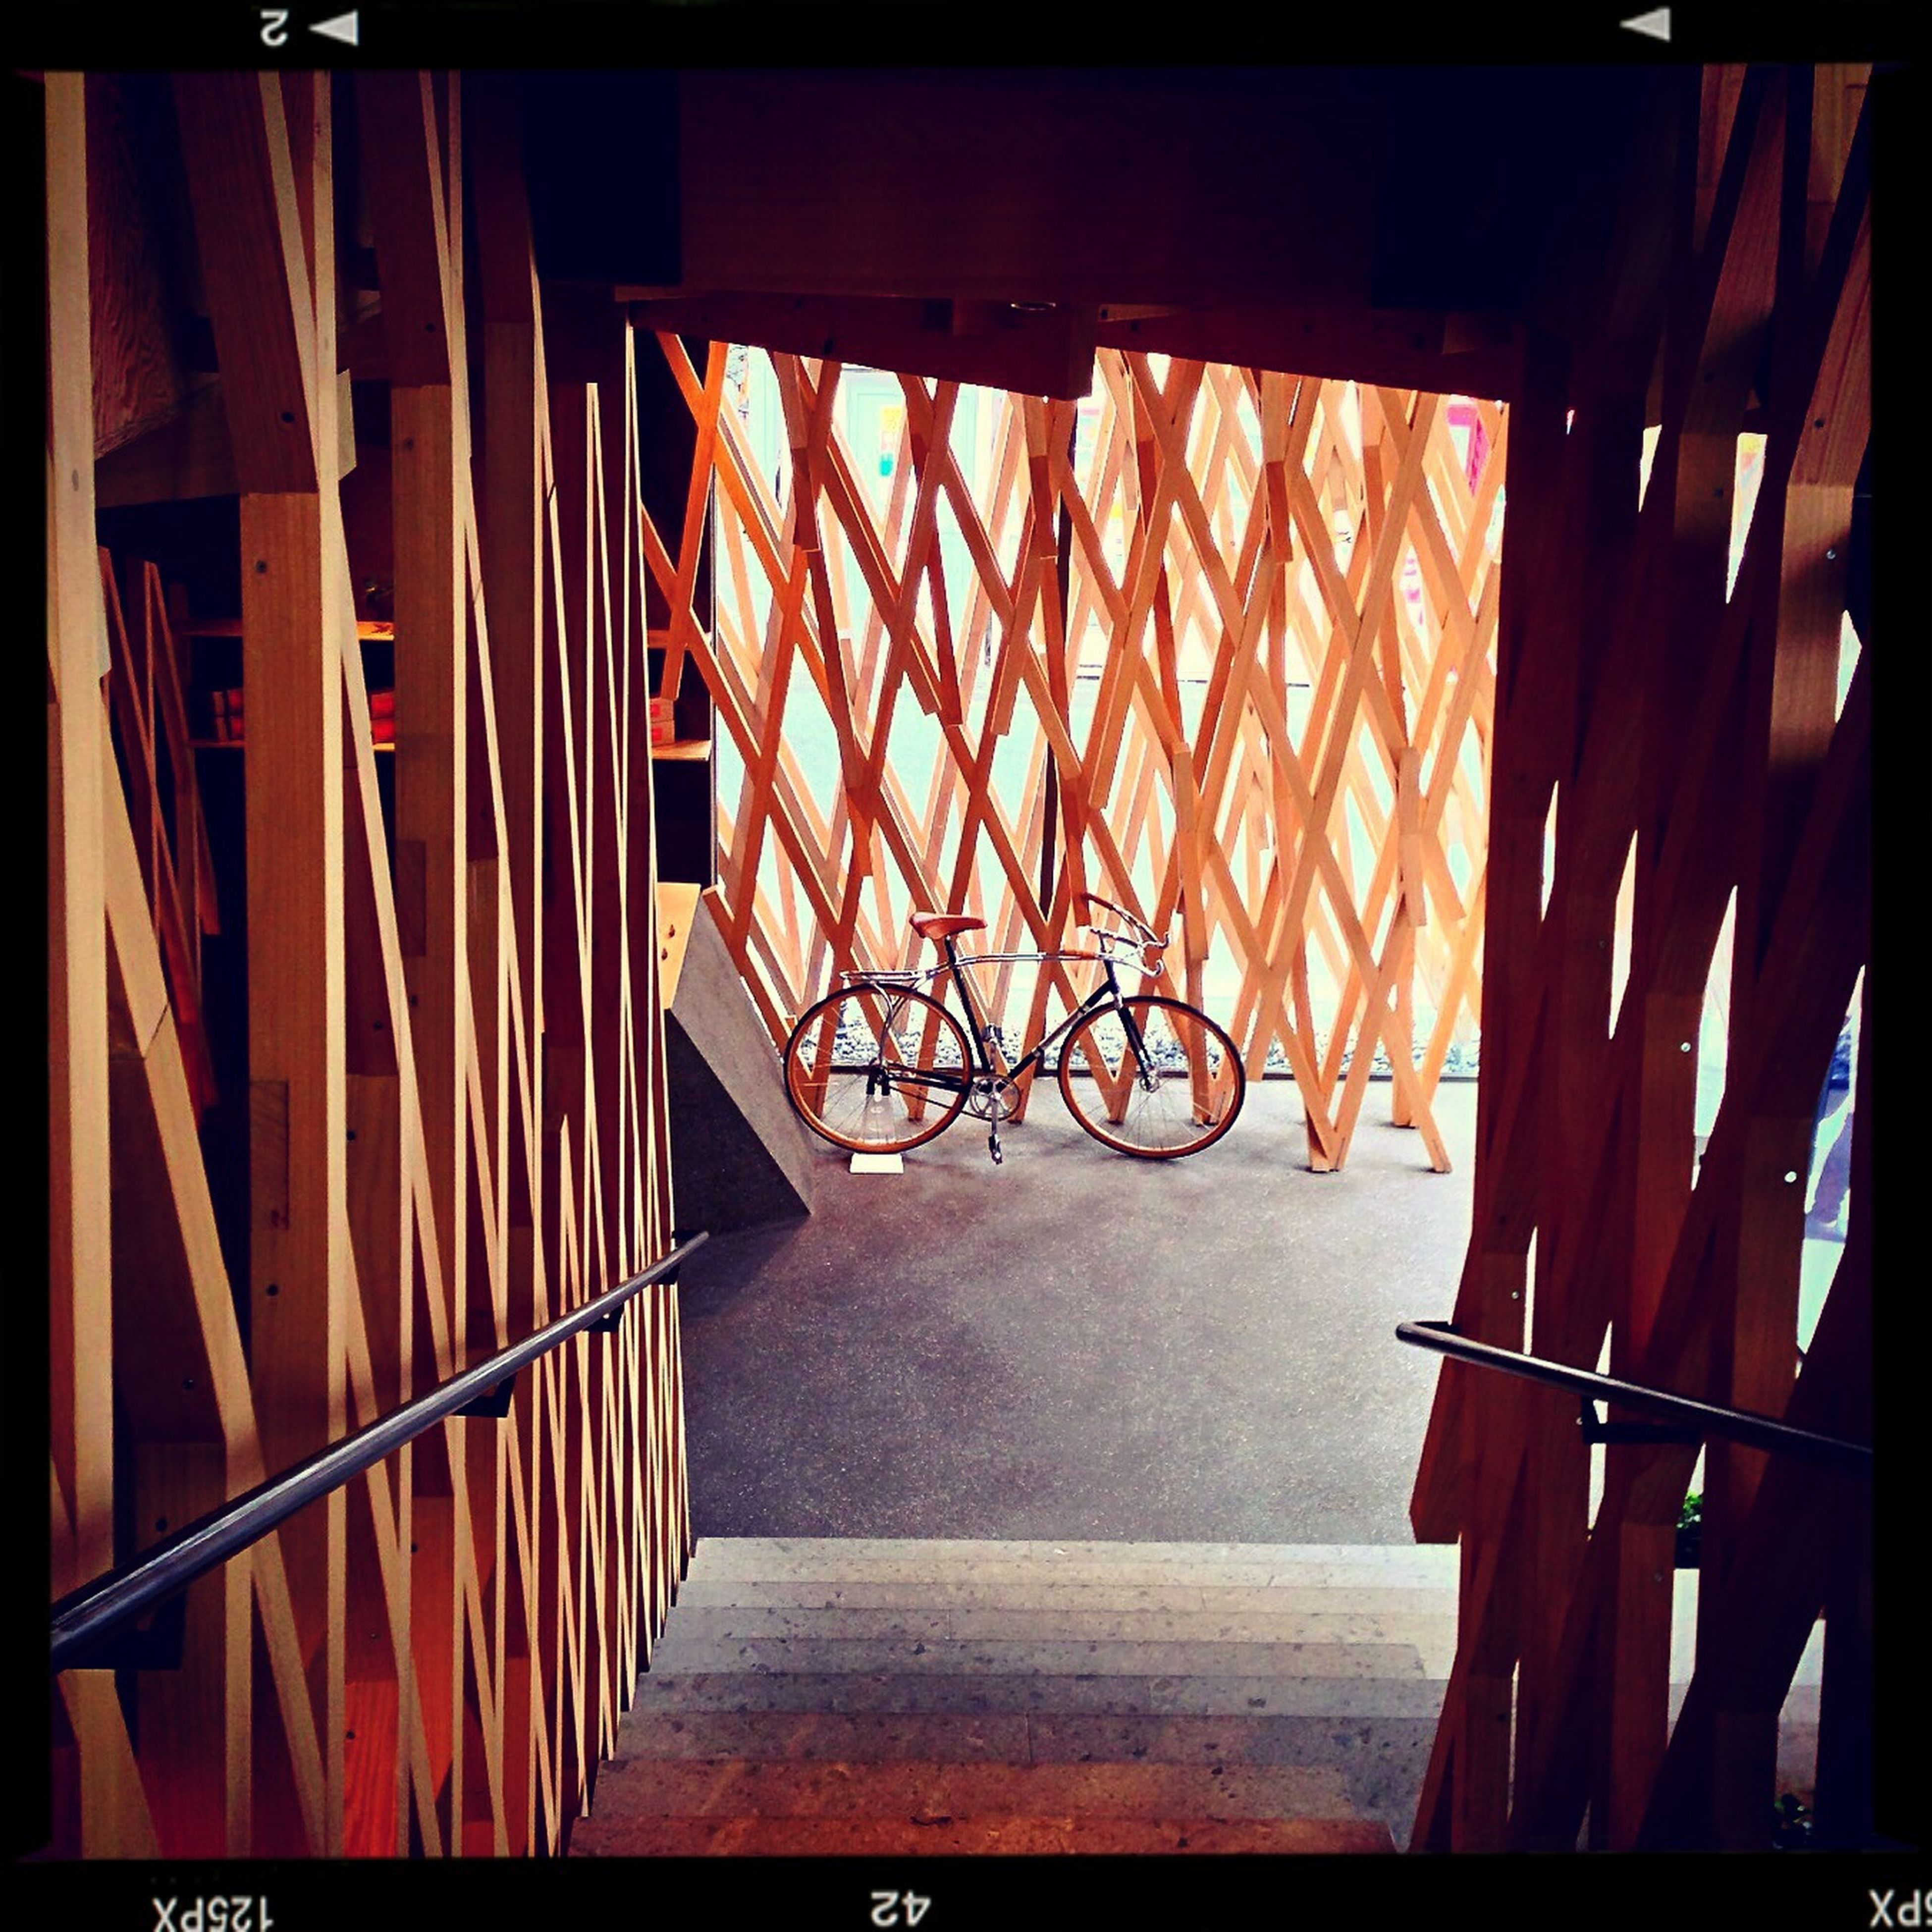 built structure, architecture, railing, sunlight, indoors, metal, wood - material, shadow, steps, protection, safety, no people, auto post production filter, building exterior, fence, metallic, pattern, day, orange color, staircase